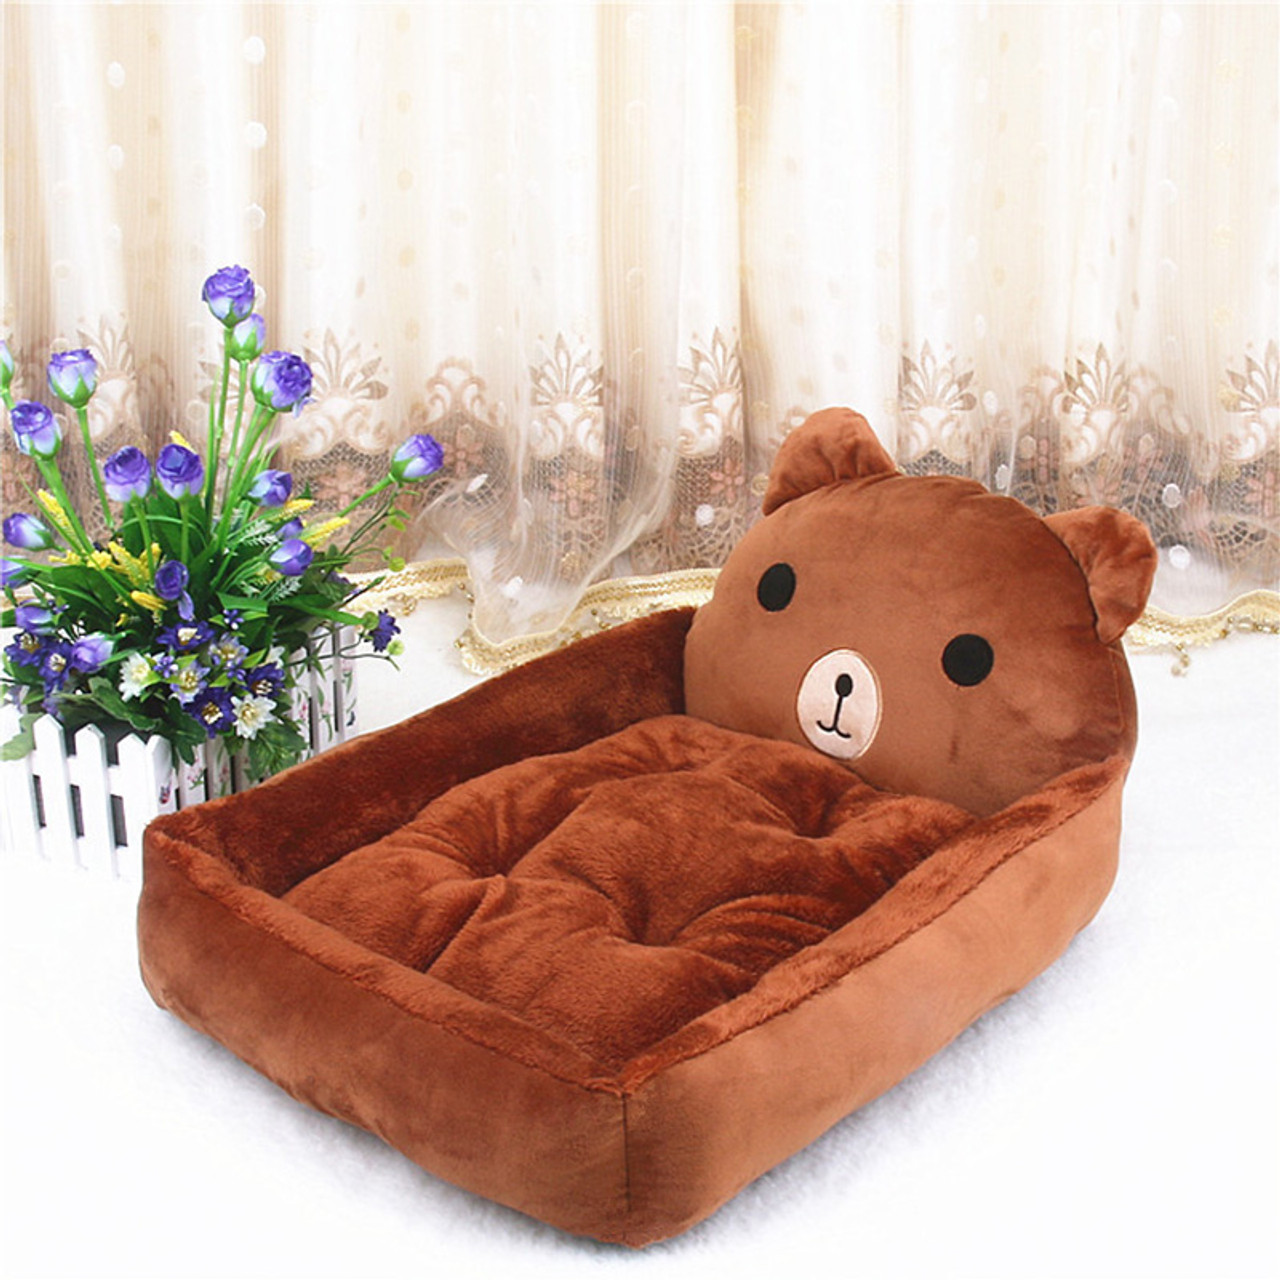 Big Blanket Supplies Dog Bed Pp Cotton Cute Animal Cartoon Shaped Warming Cat House Dog Beds